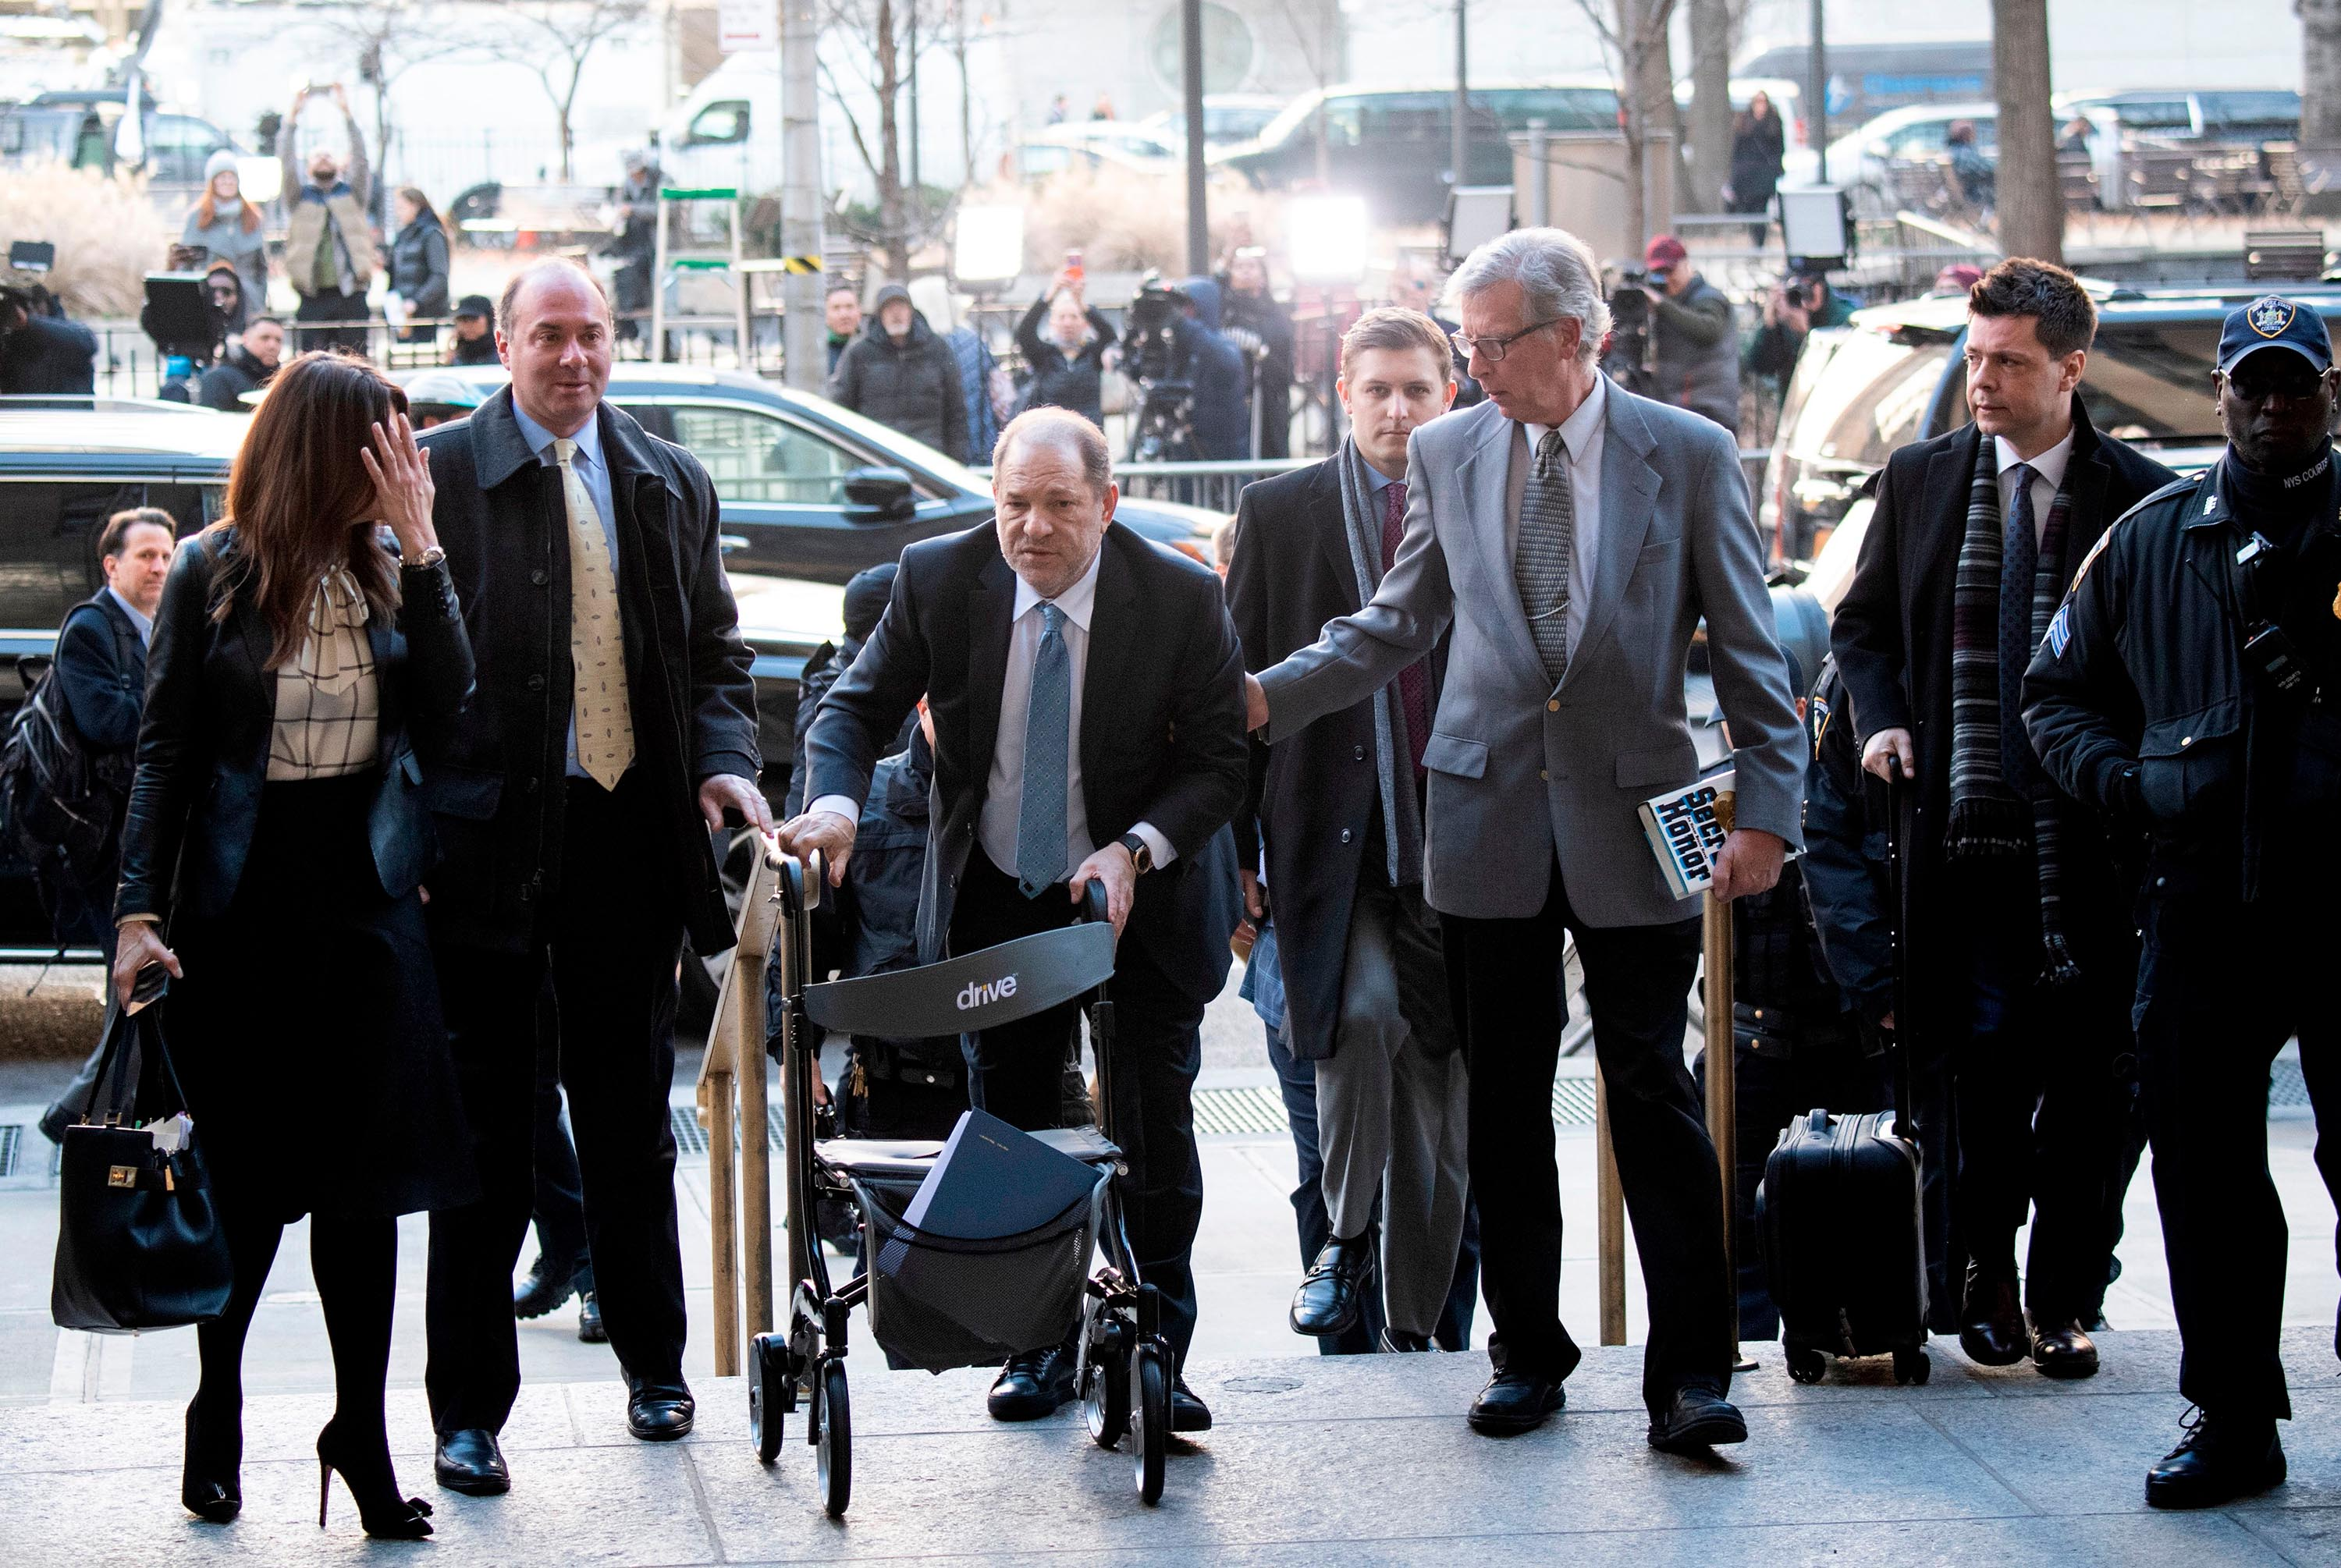 Harvey Weinstein arrives with his legal team at the Manhattan Criminal Court, on February 24, 2020 in New York City.